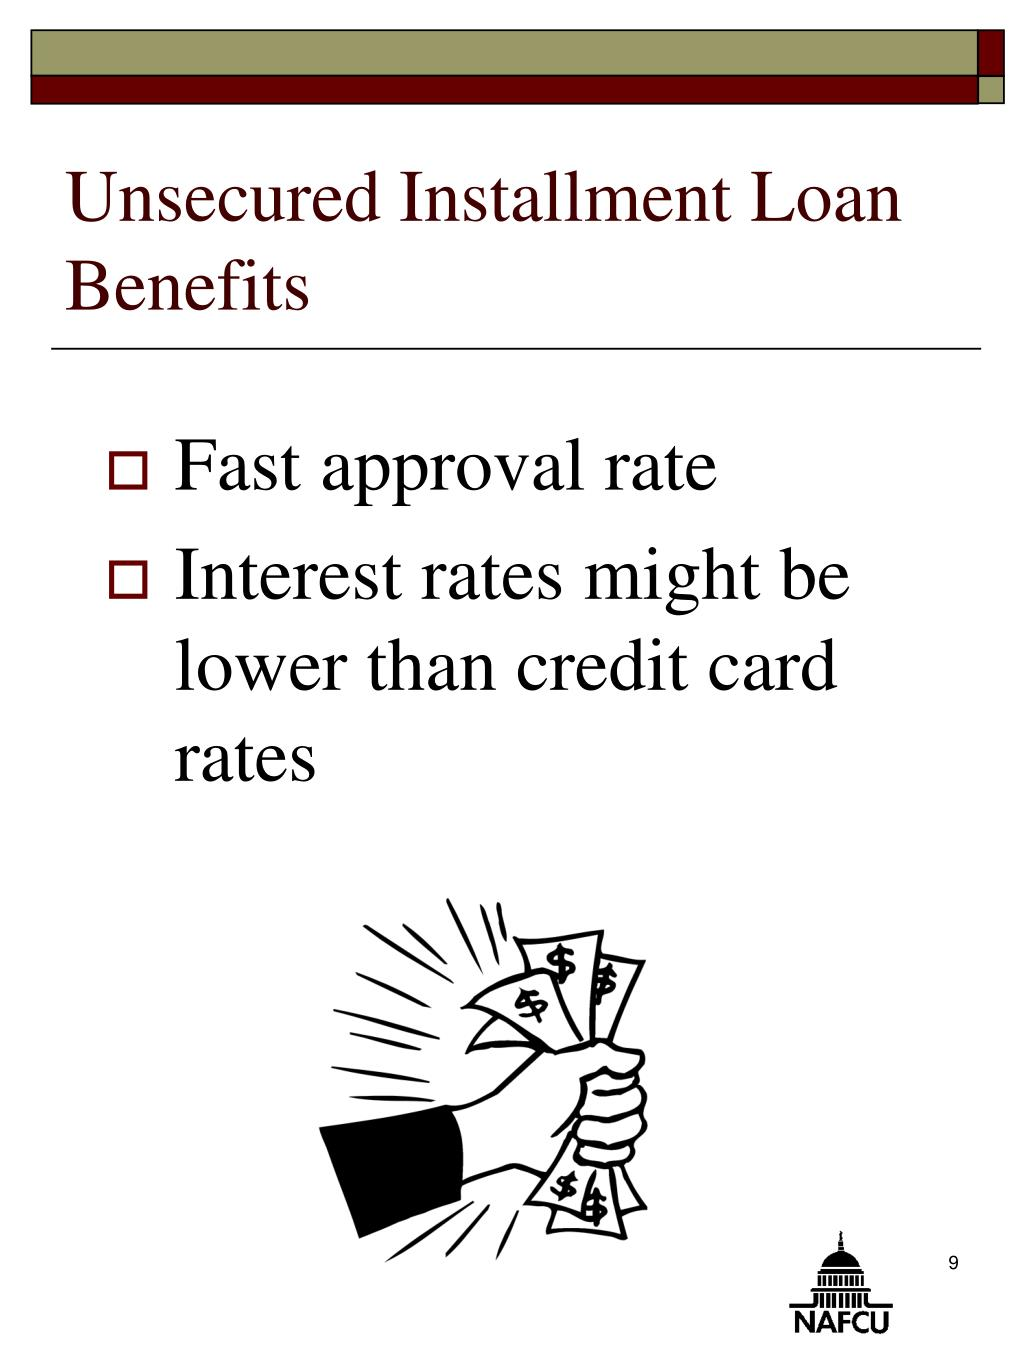 Unsecured Installment Loan Benefits